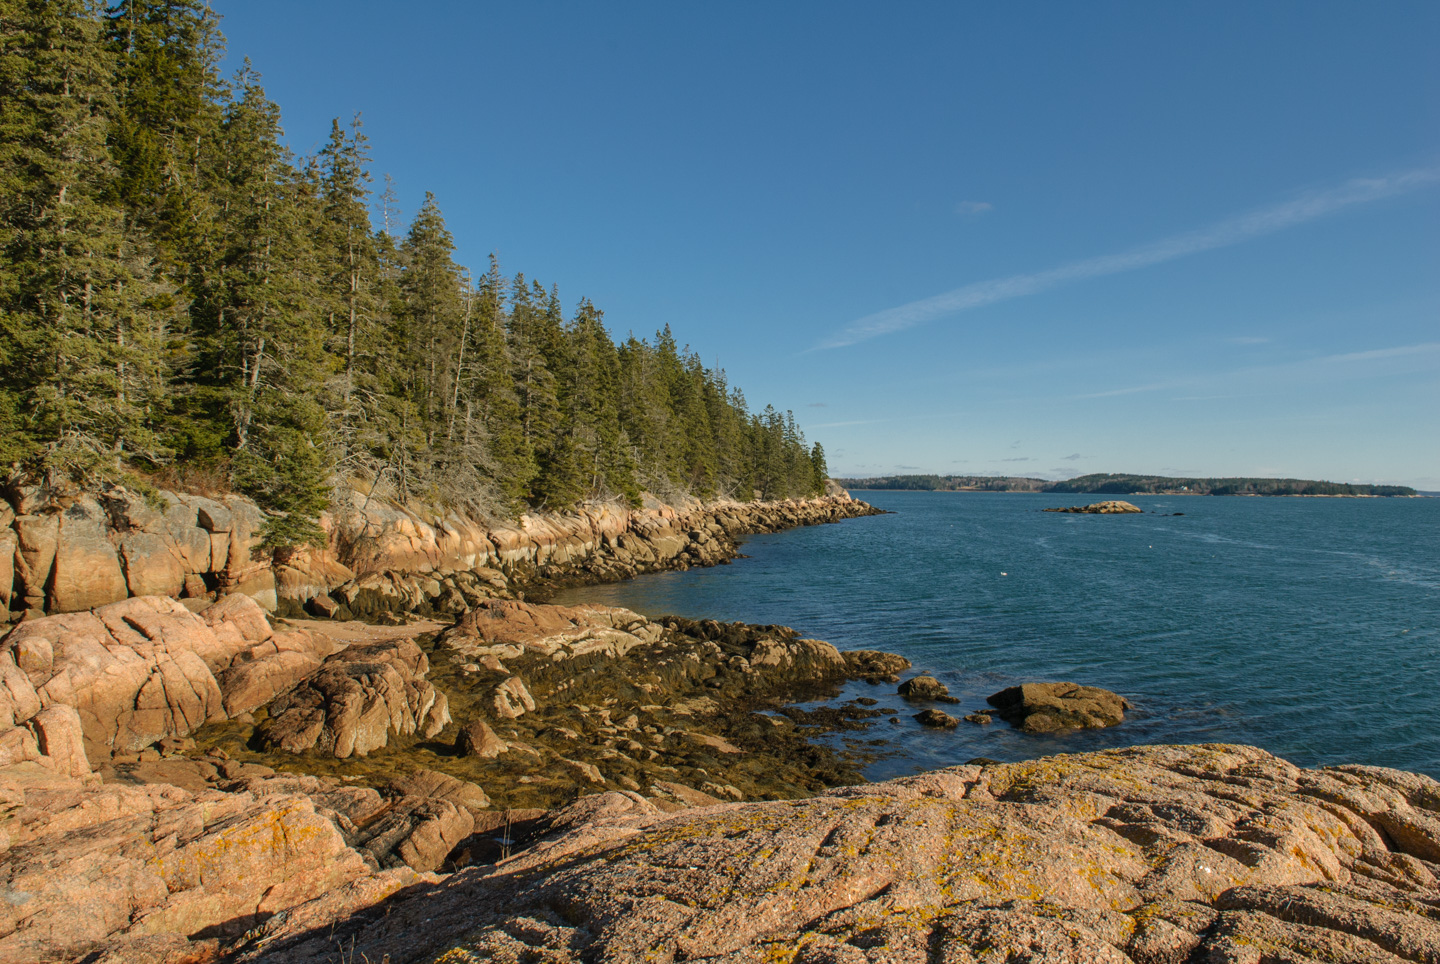 Water scene, taken at Edgar Tennis Preserve on Deer Isle